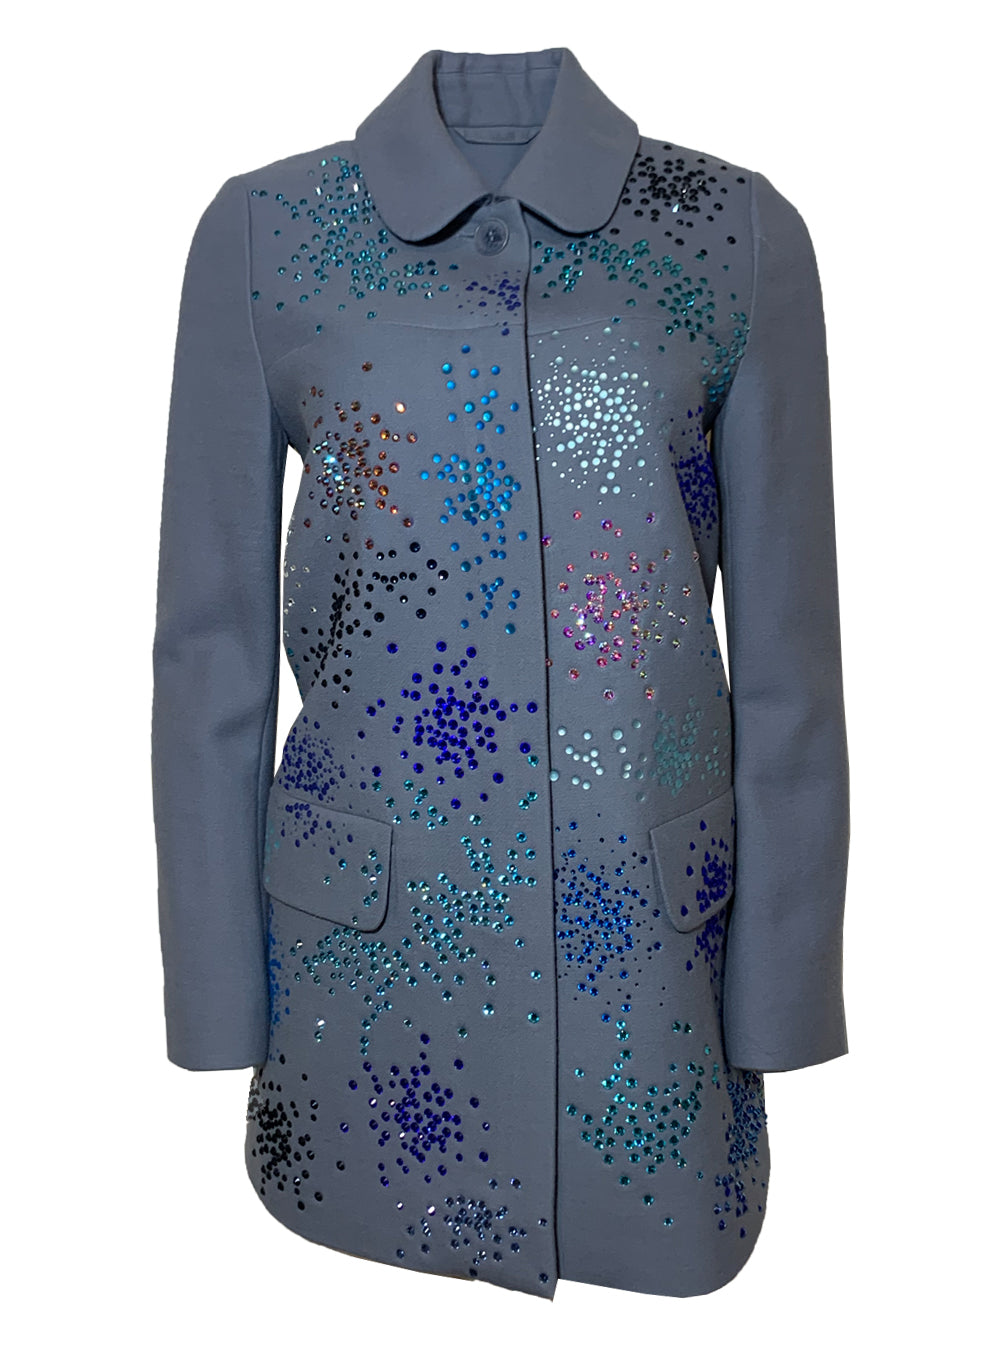 BLUE MO' MONET MO' PROBLEMS VINTAGE COAT - One of a Kinds - Libertine